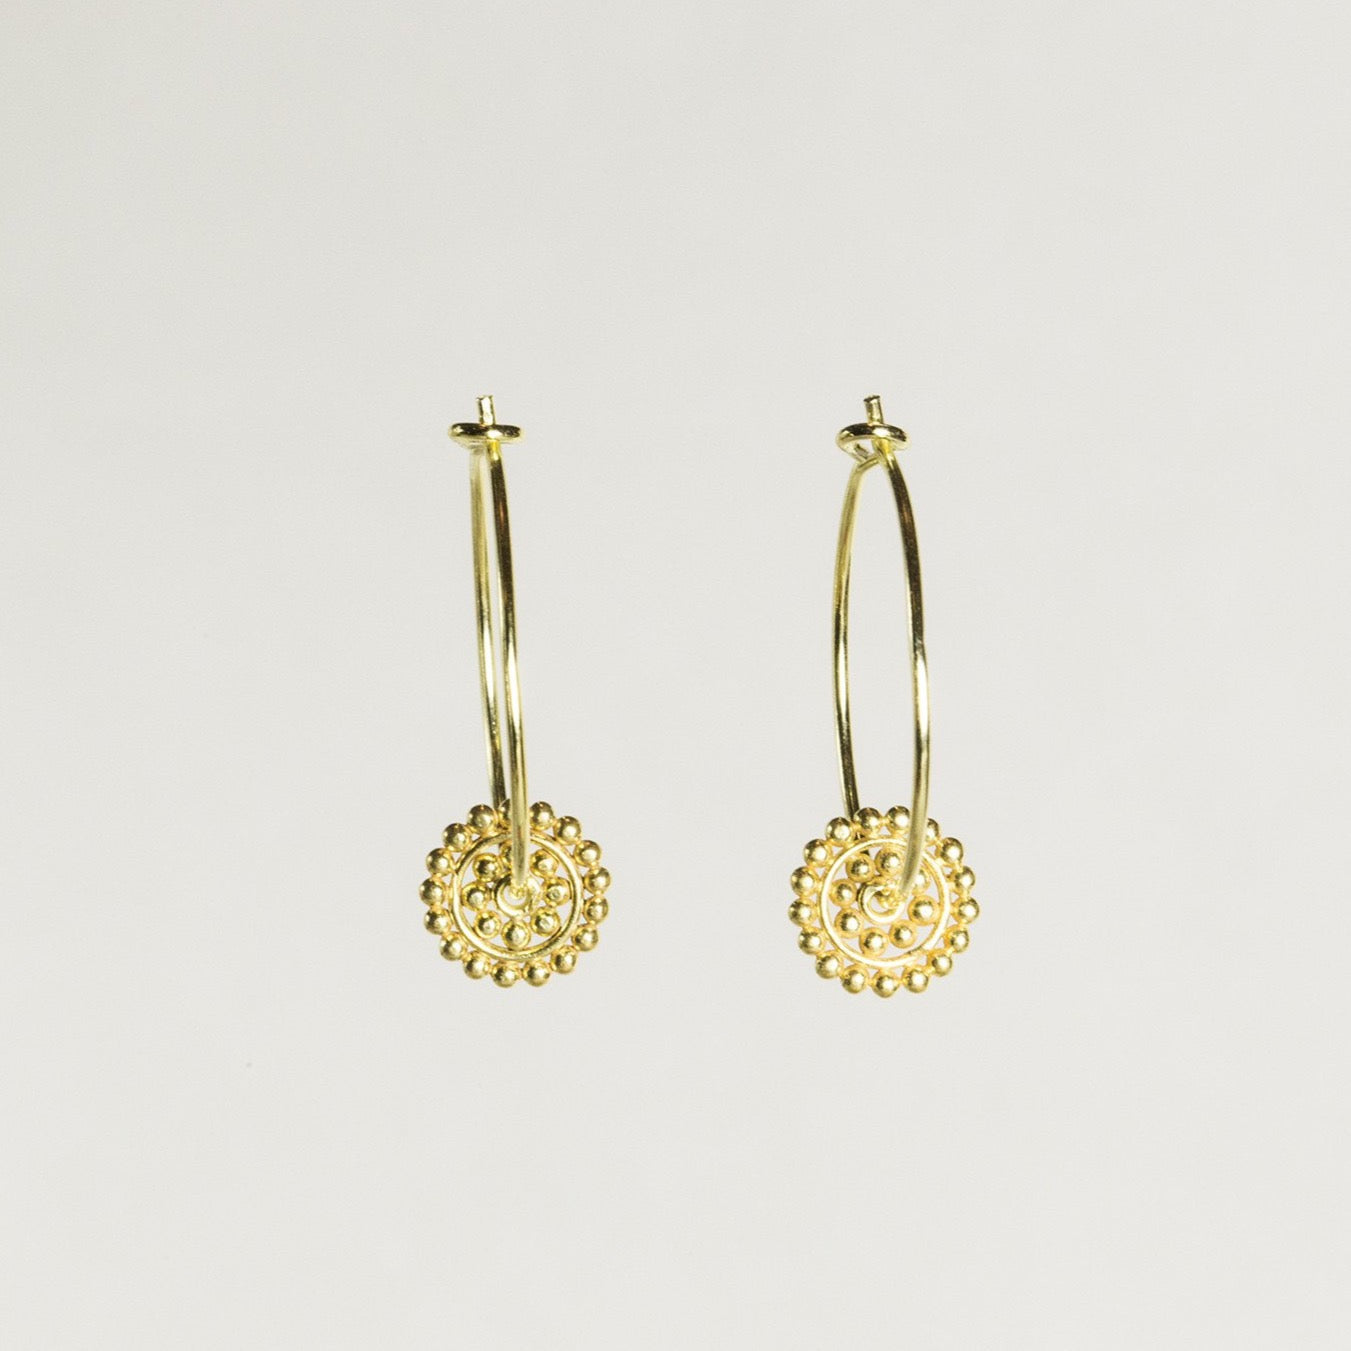 a copy of Roman antique earrings, theses dotted circles are a fantastic addition to a simple hoop